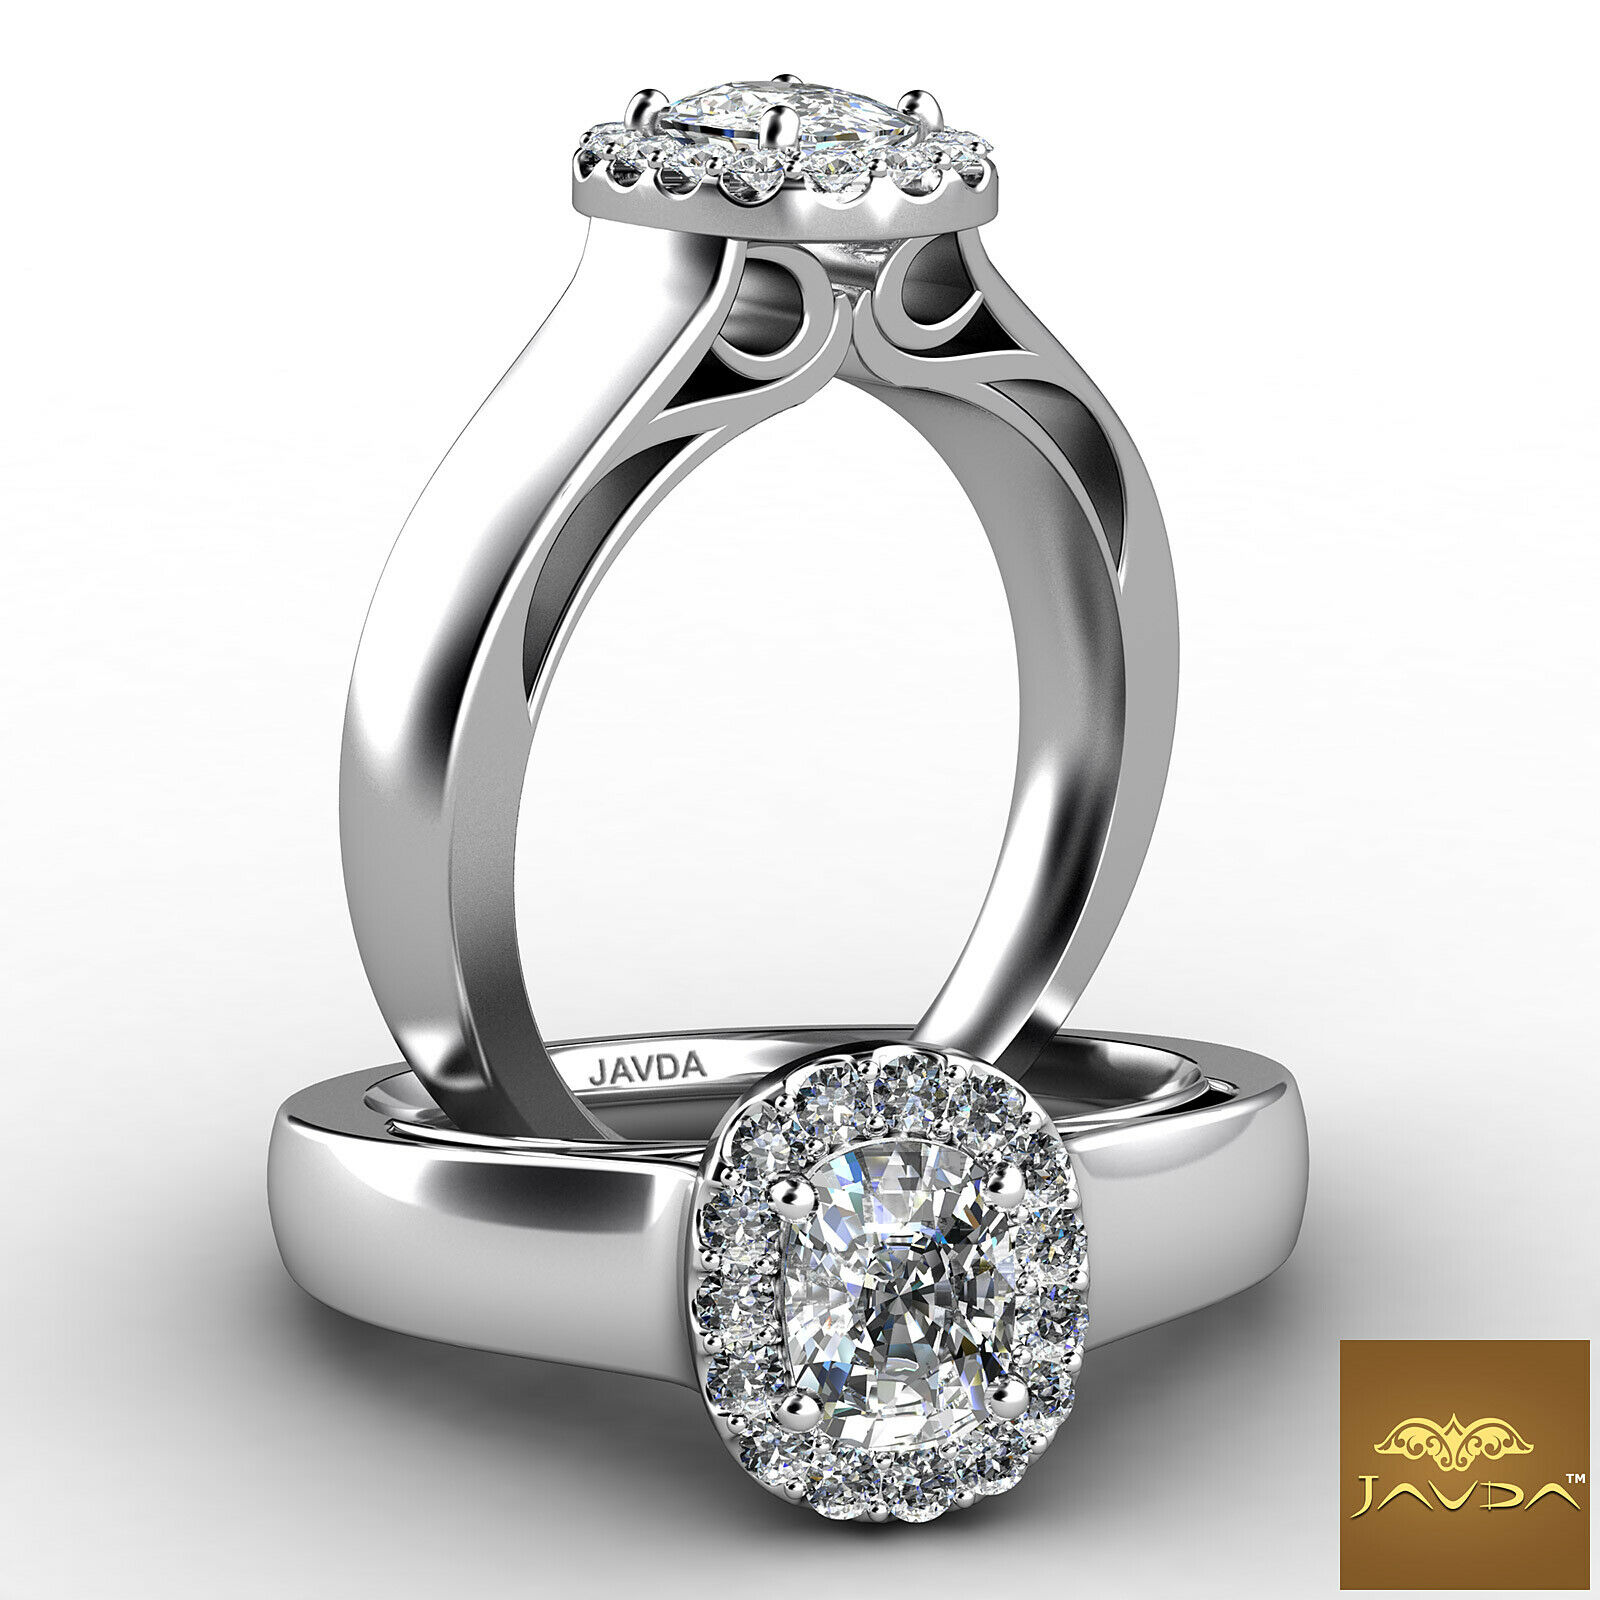 0.8Ct Cathedral Halo U Cut Pave Cushion Diamond Engagement Ring GIA F-VS1 W Gold